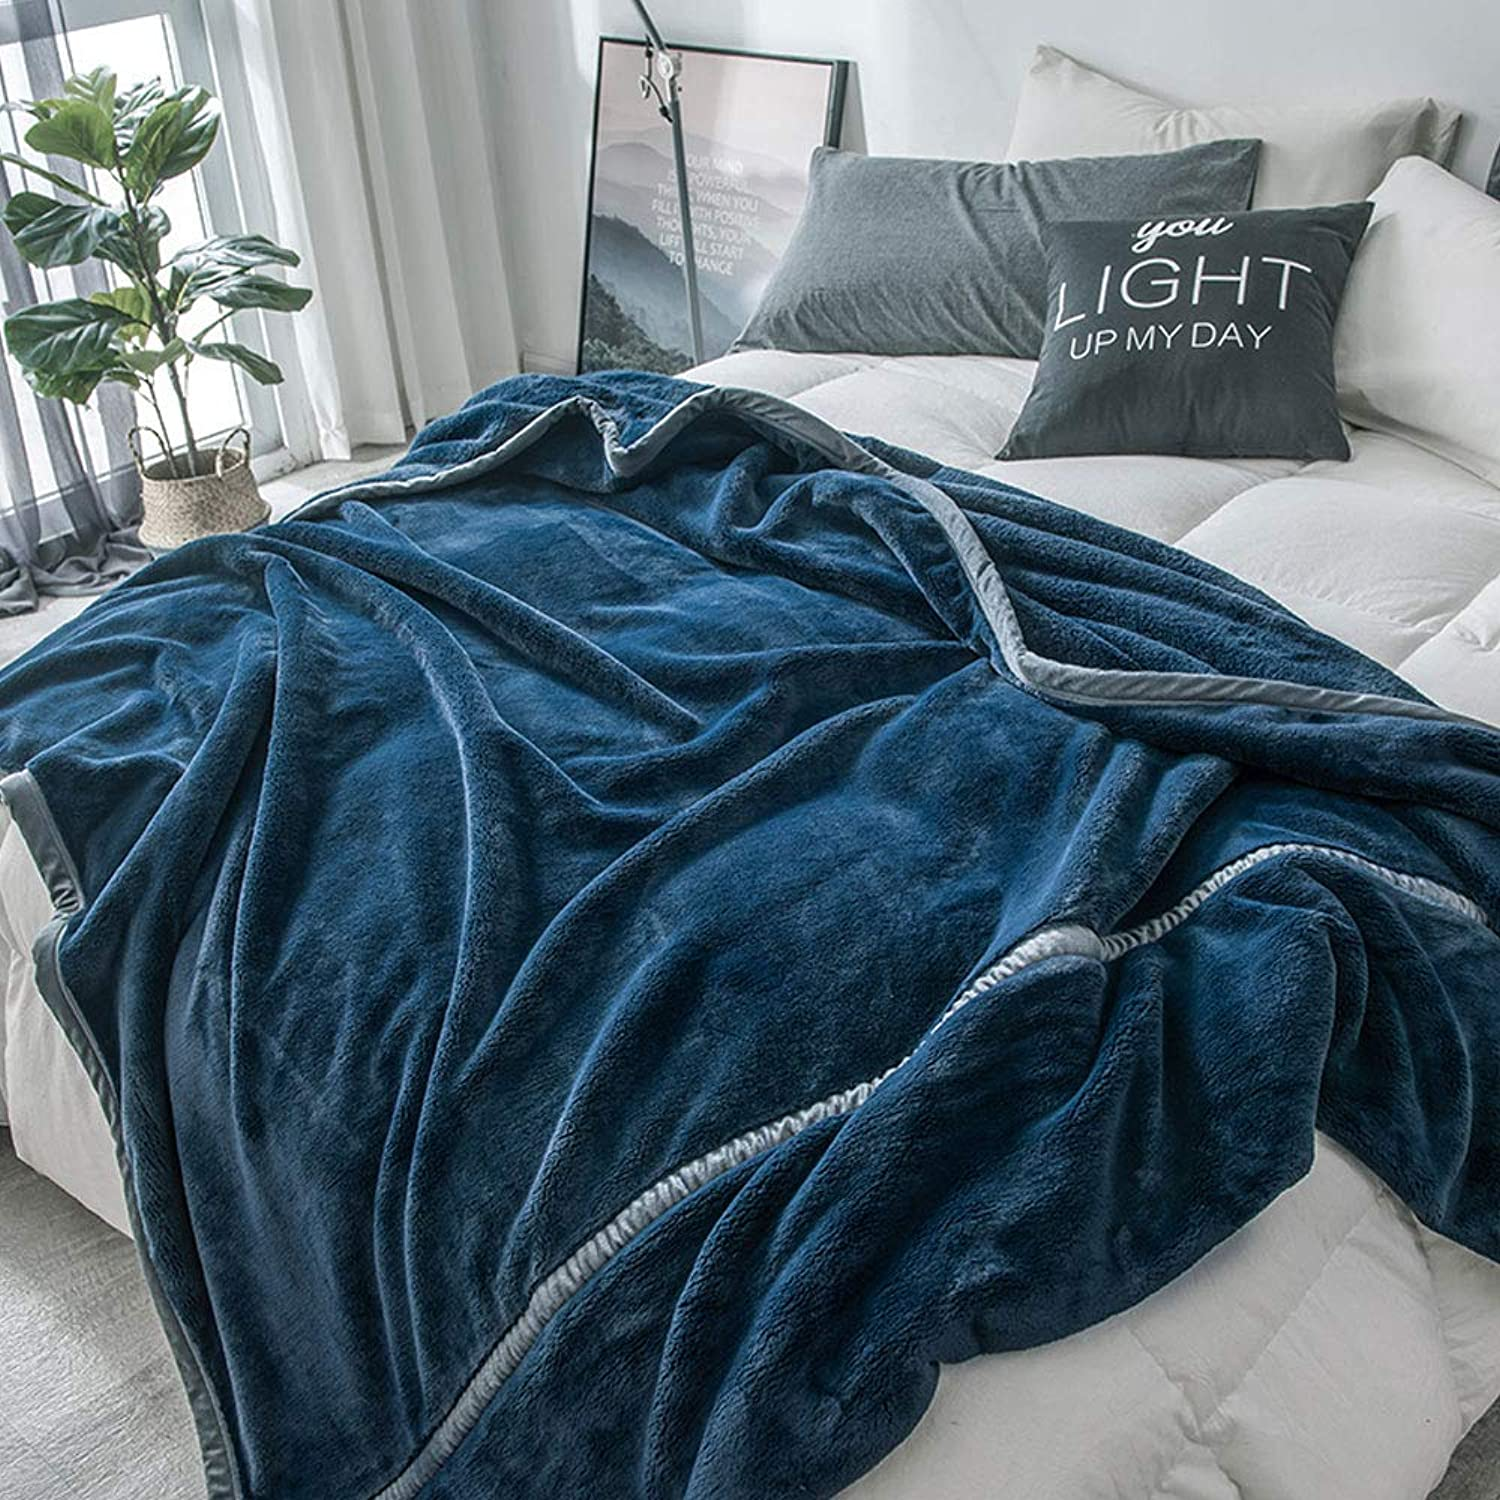 Blanket Thick Raschel Coral Velvet blanket Autumn and Winter Warm Flannel Sheets (color   Dark bluee, Size   59.06  78.74)